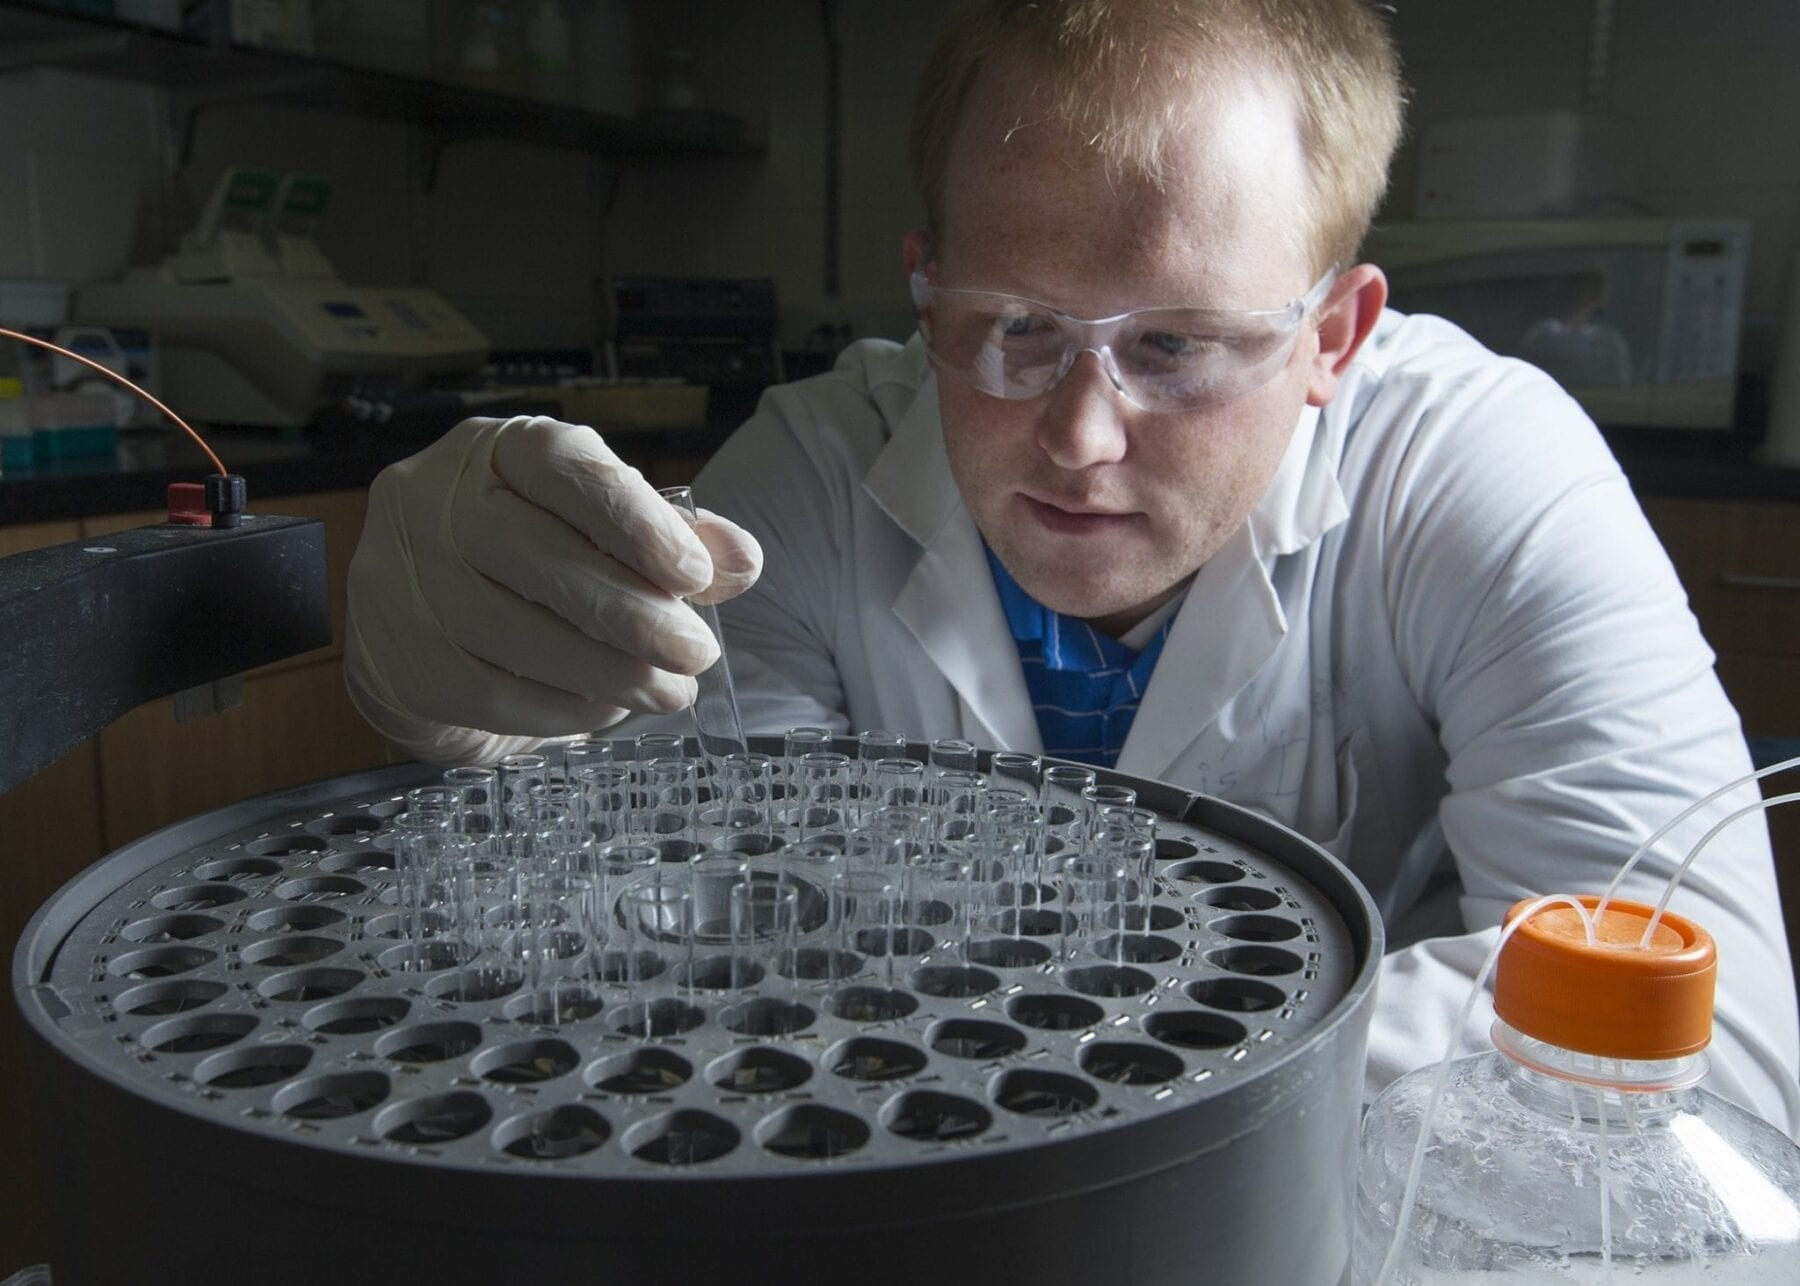 BYU researchers speeding up process of making vaccines